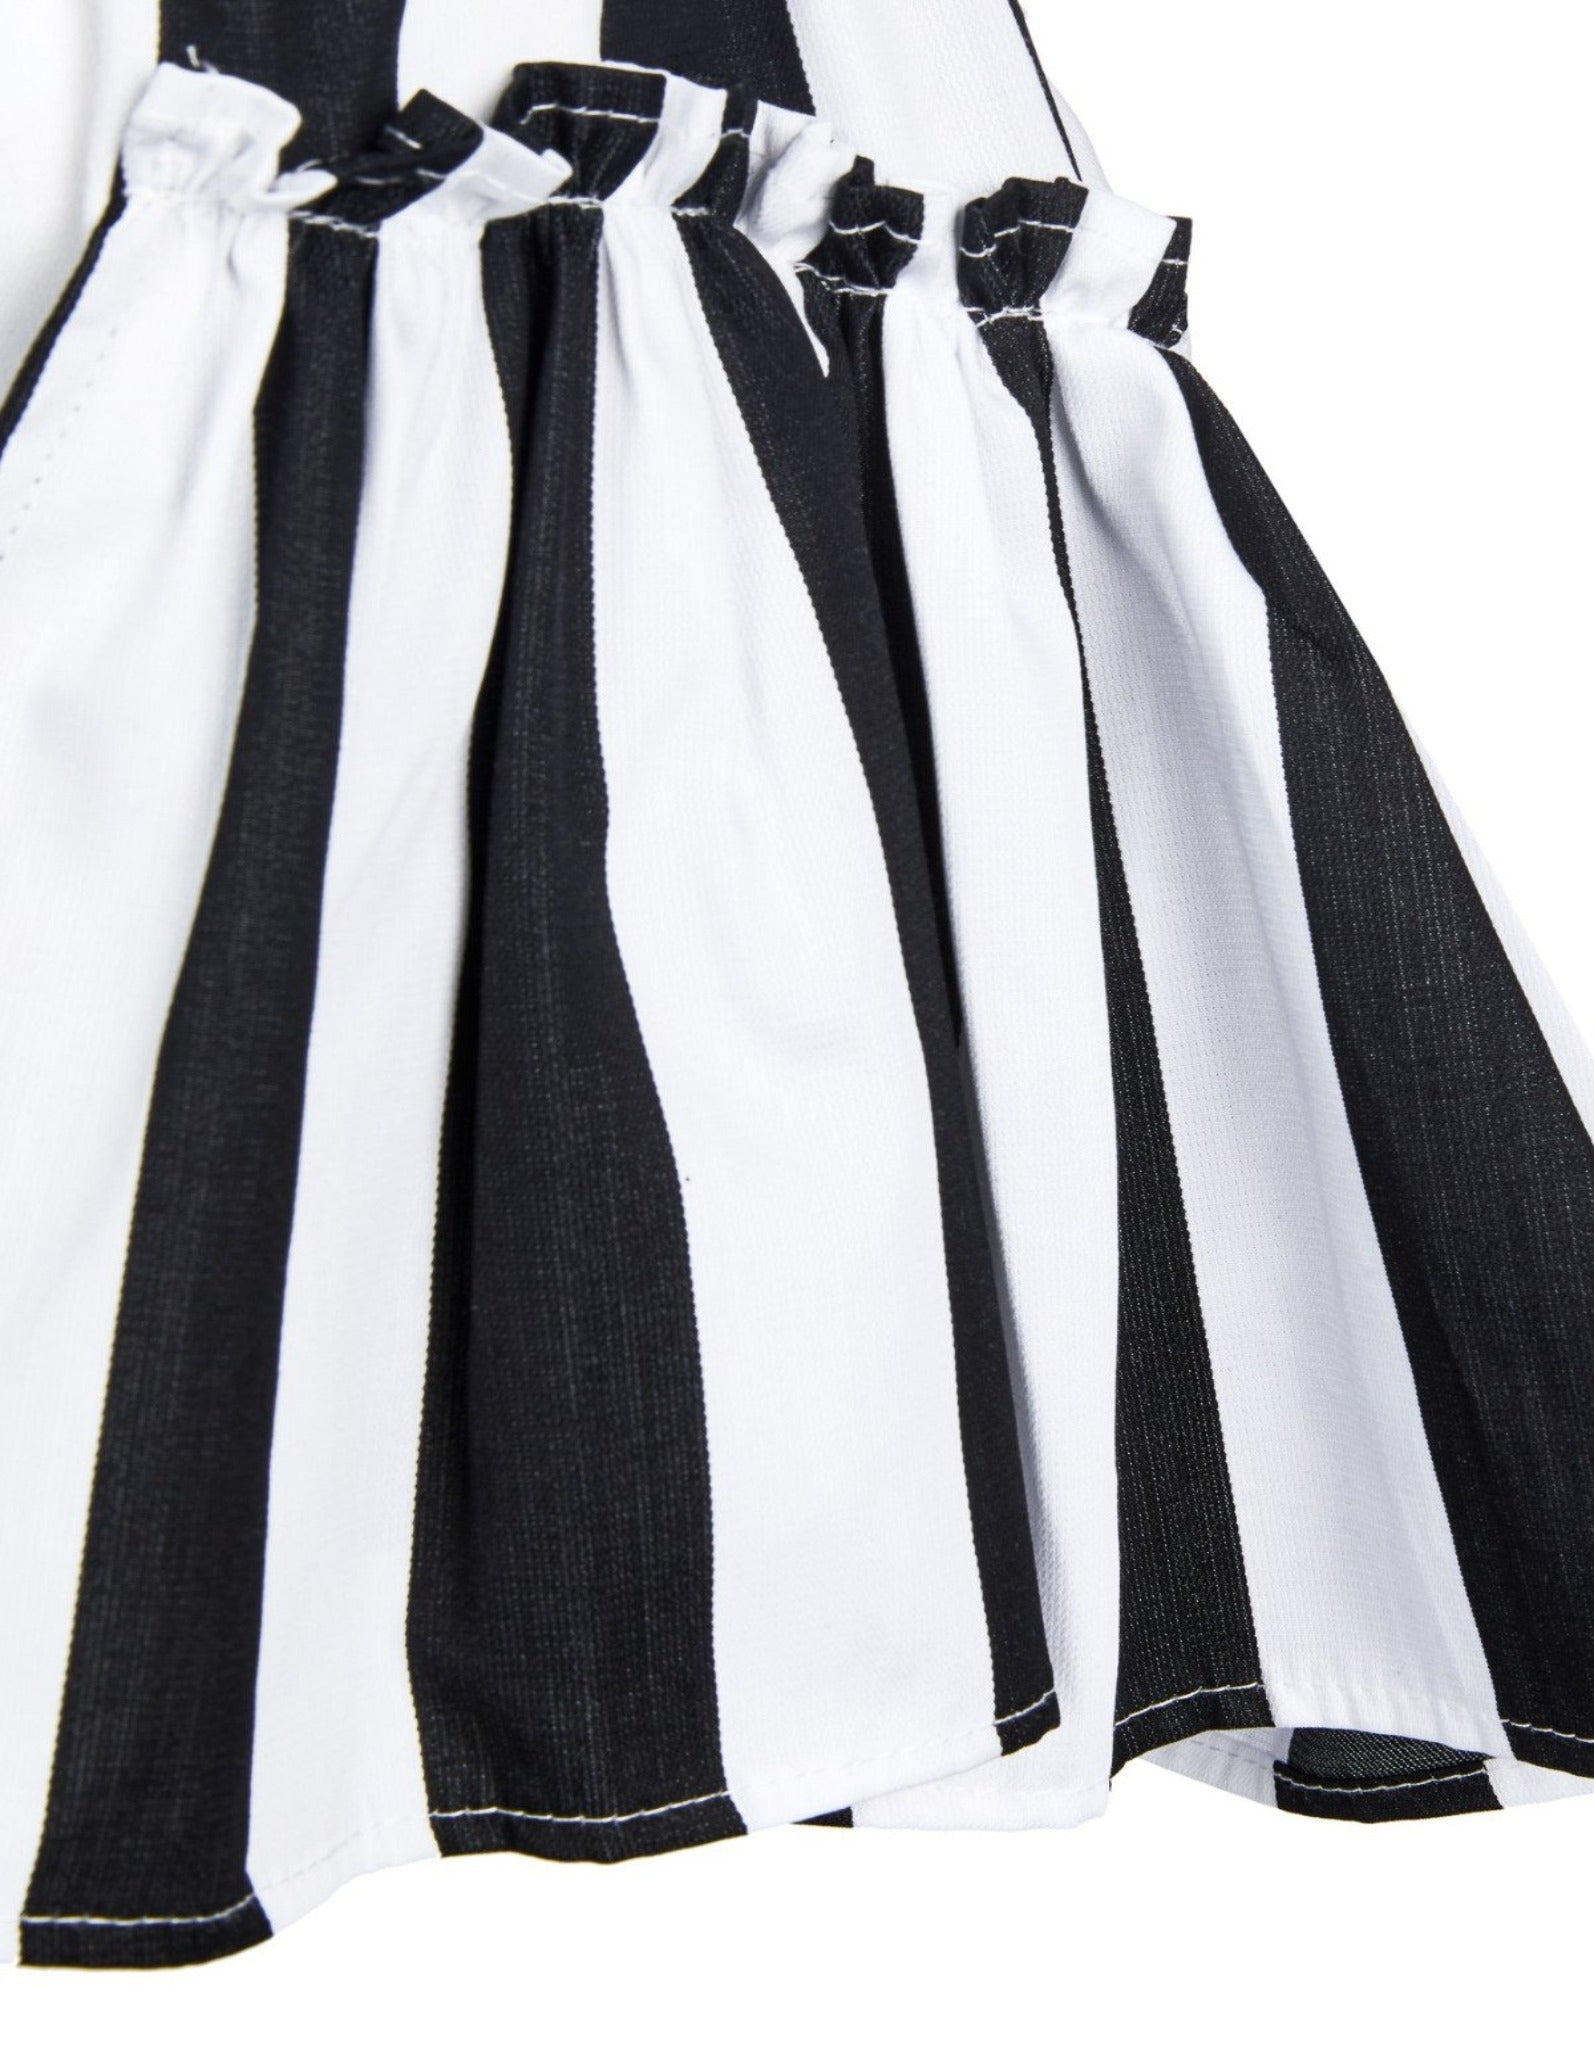 FRILL SHORTS IN BLACK AND WHITE